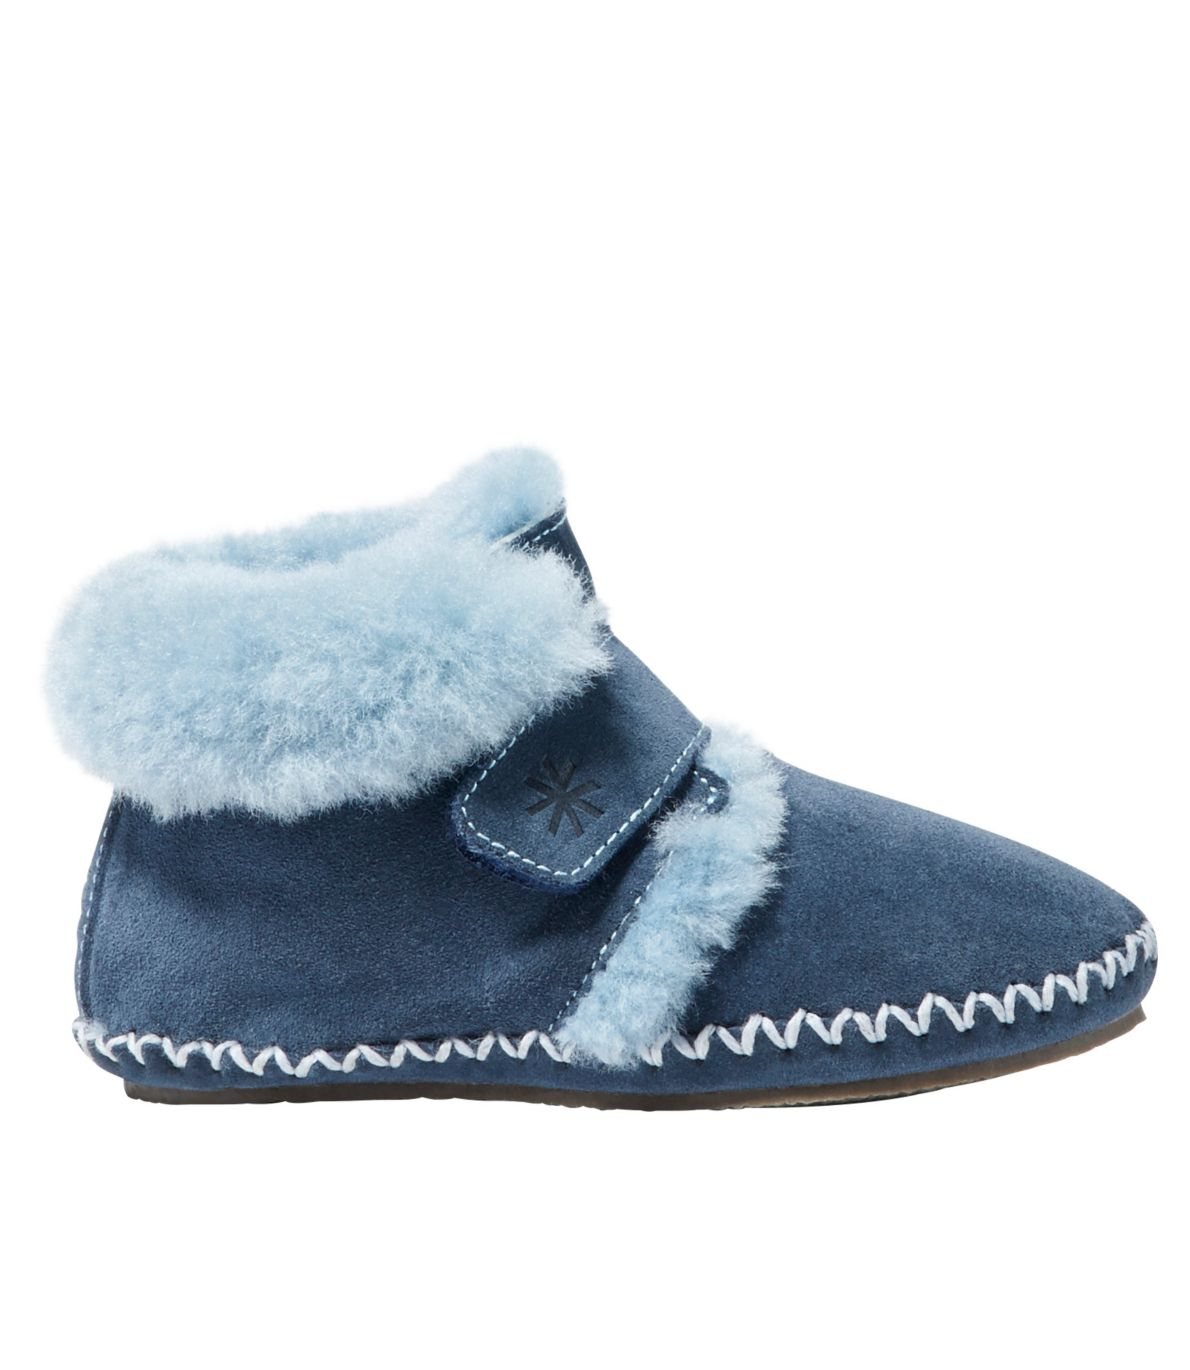 Toddlers' Wicked Good Slippers